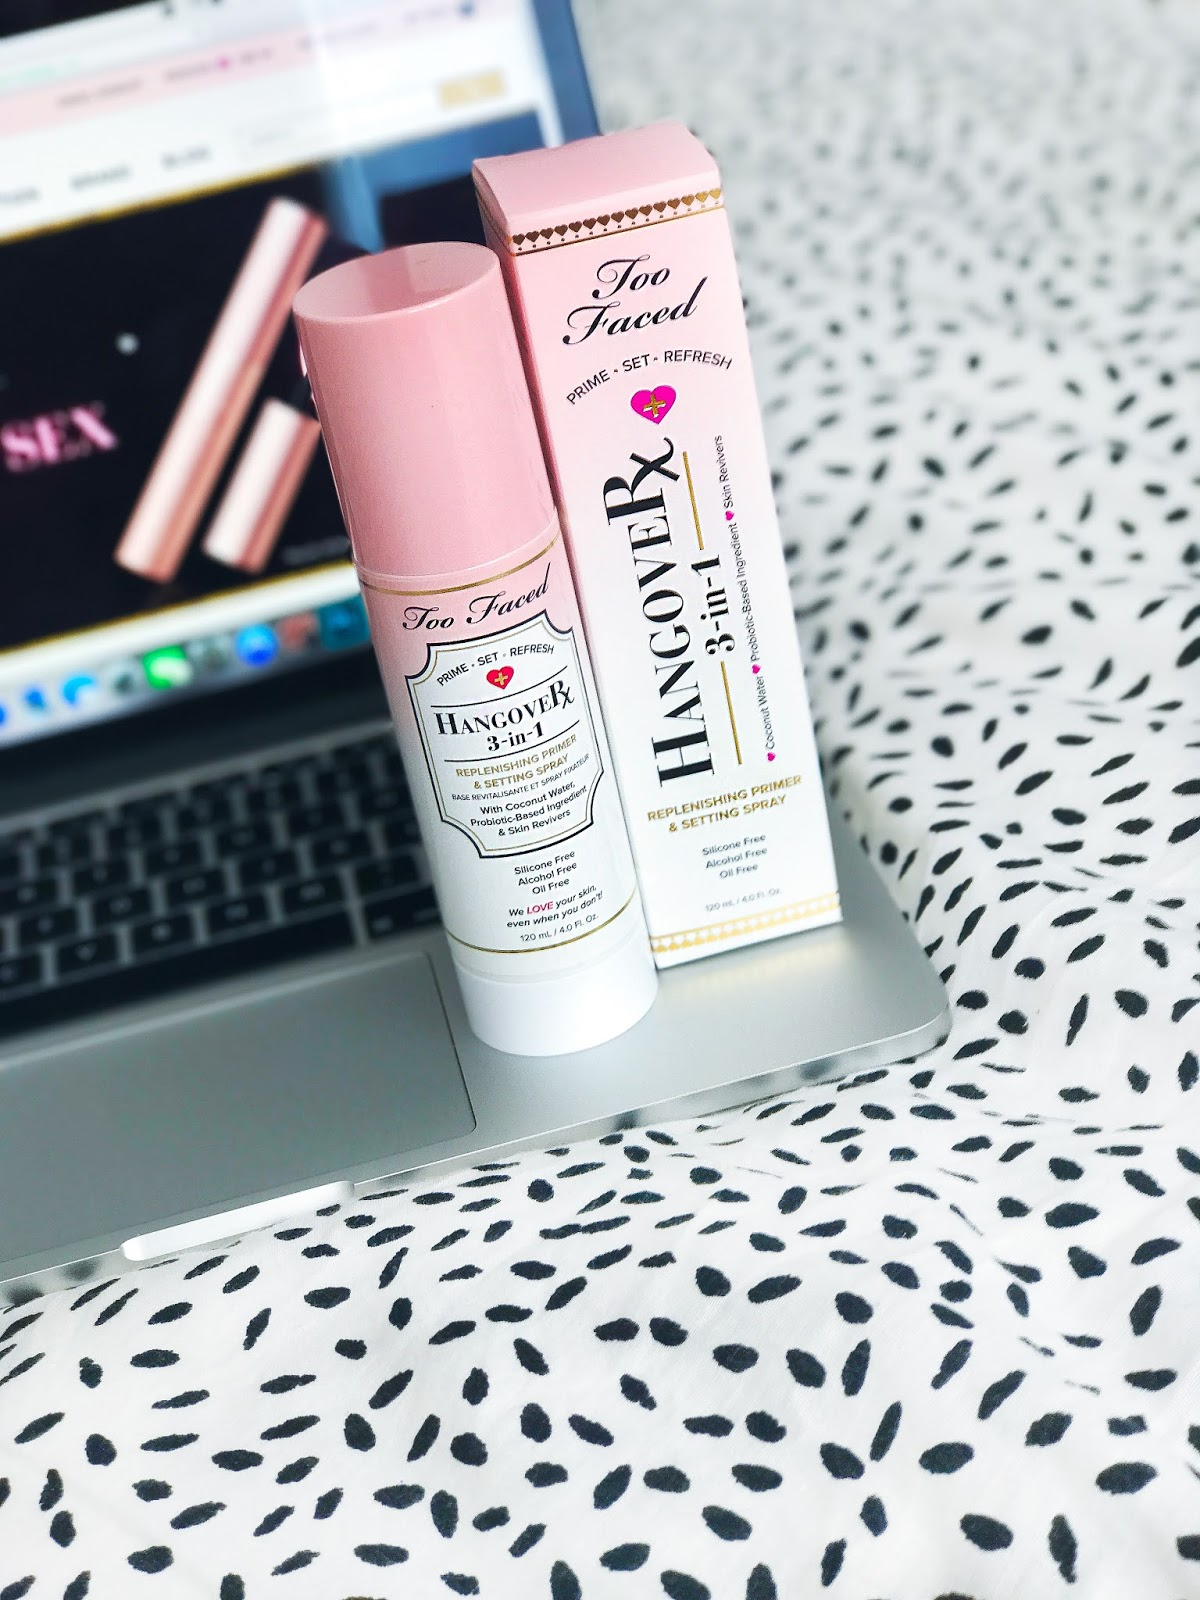 Too Faced Hangover Primer Spray Review 3-in-1 Setting Spray